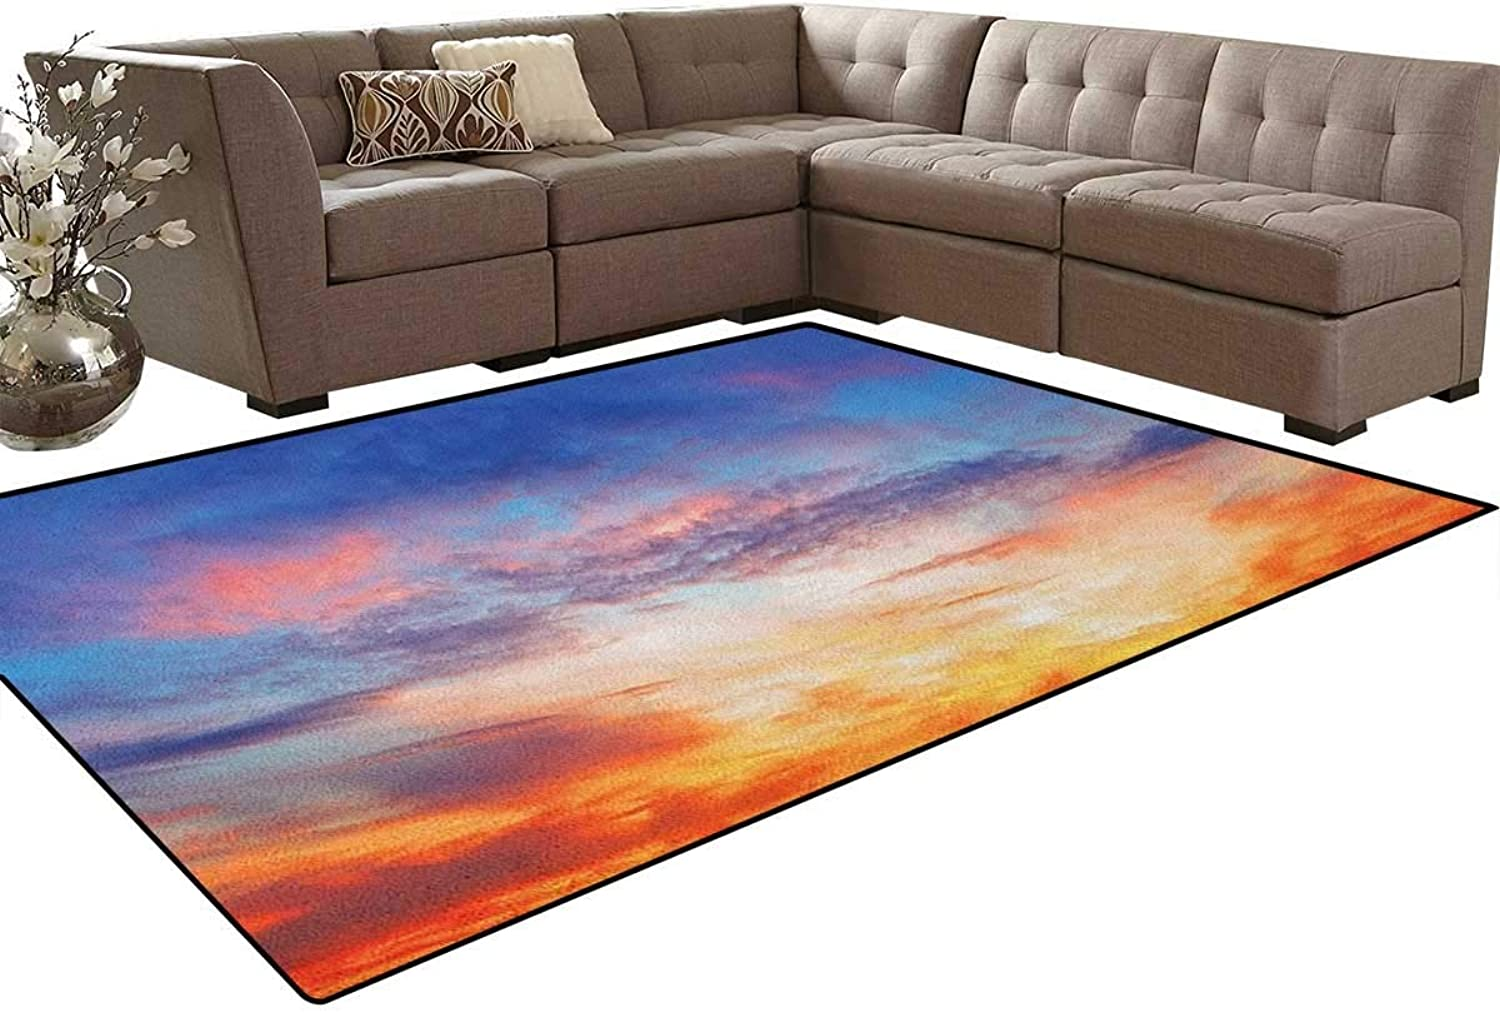 colorful Vivid Illuminated Evening Sky During Sunset Cloudscape Scenic View Floor Mat Rug Indoor Front Door Kitchen and Living Room Bedroom Mats Rubber Non Slip